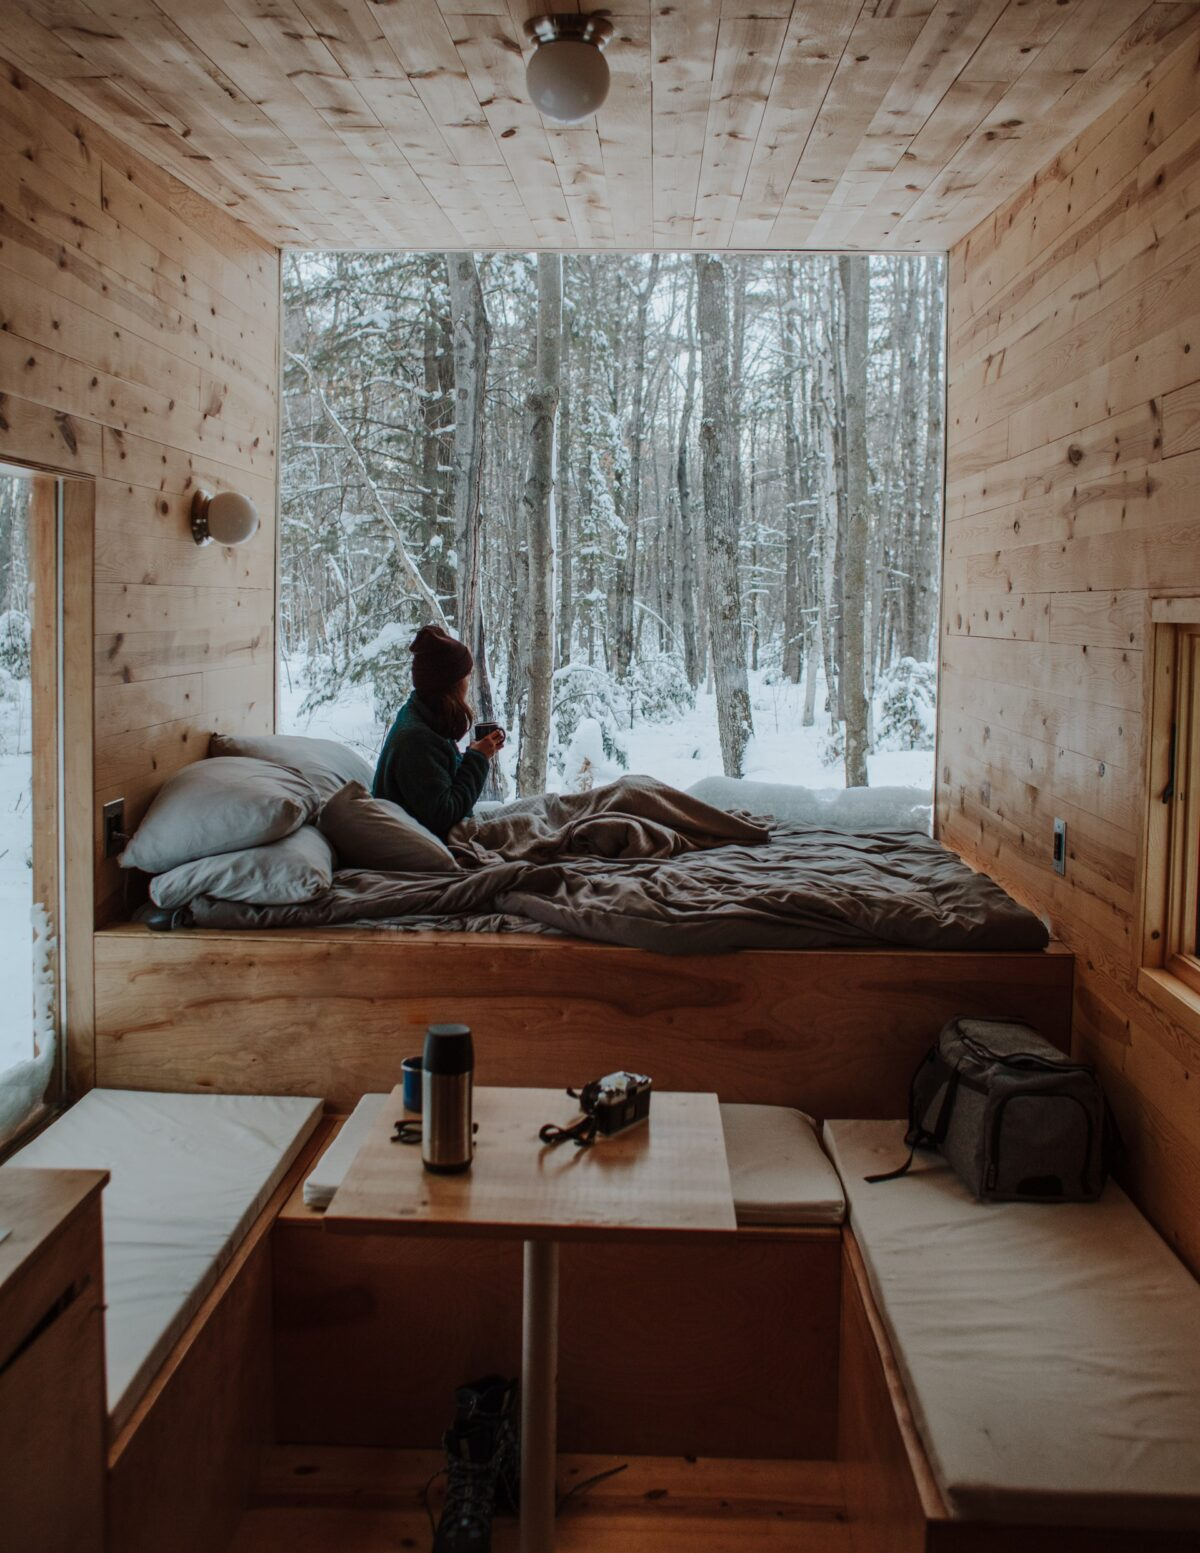 Woman sipping drink in log cabin looking out of the window onto snowy forest